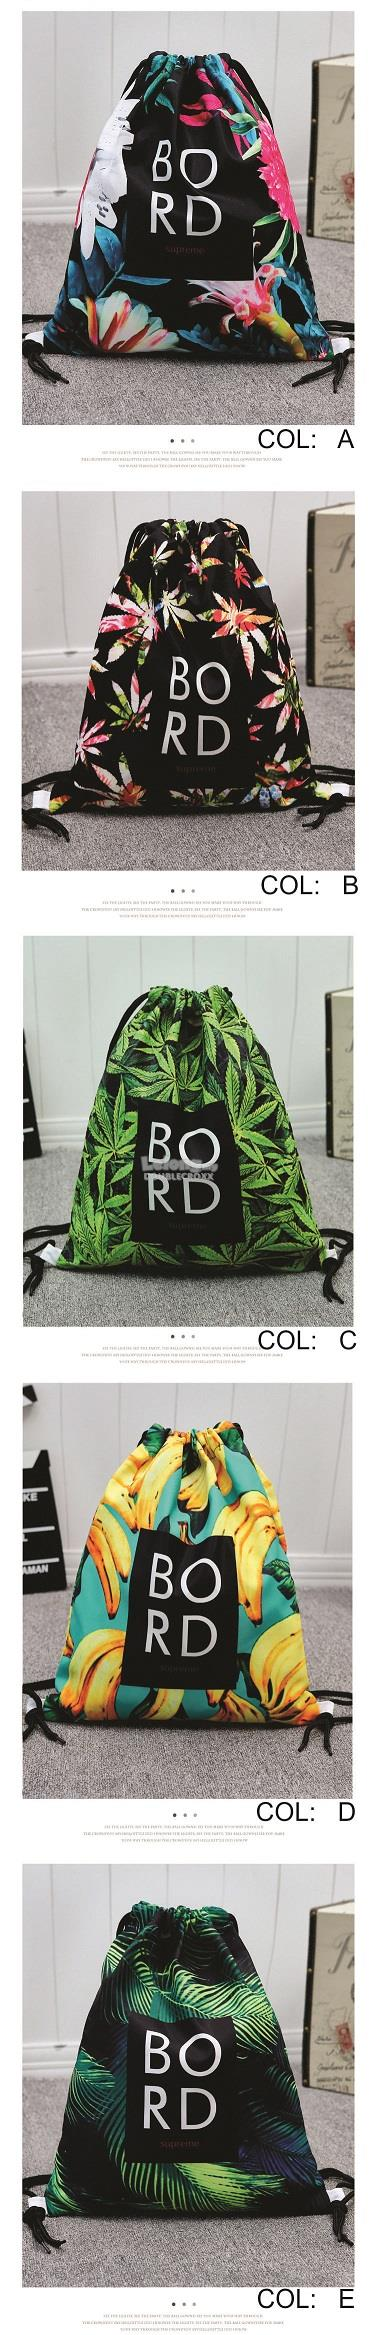 LATEST WATERPROOF DIGITAL PRINT BACKPACK HELMET BAG